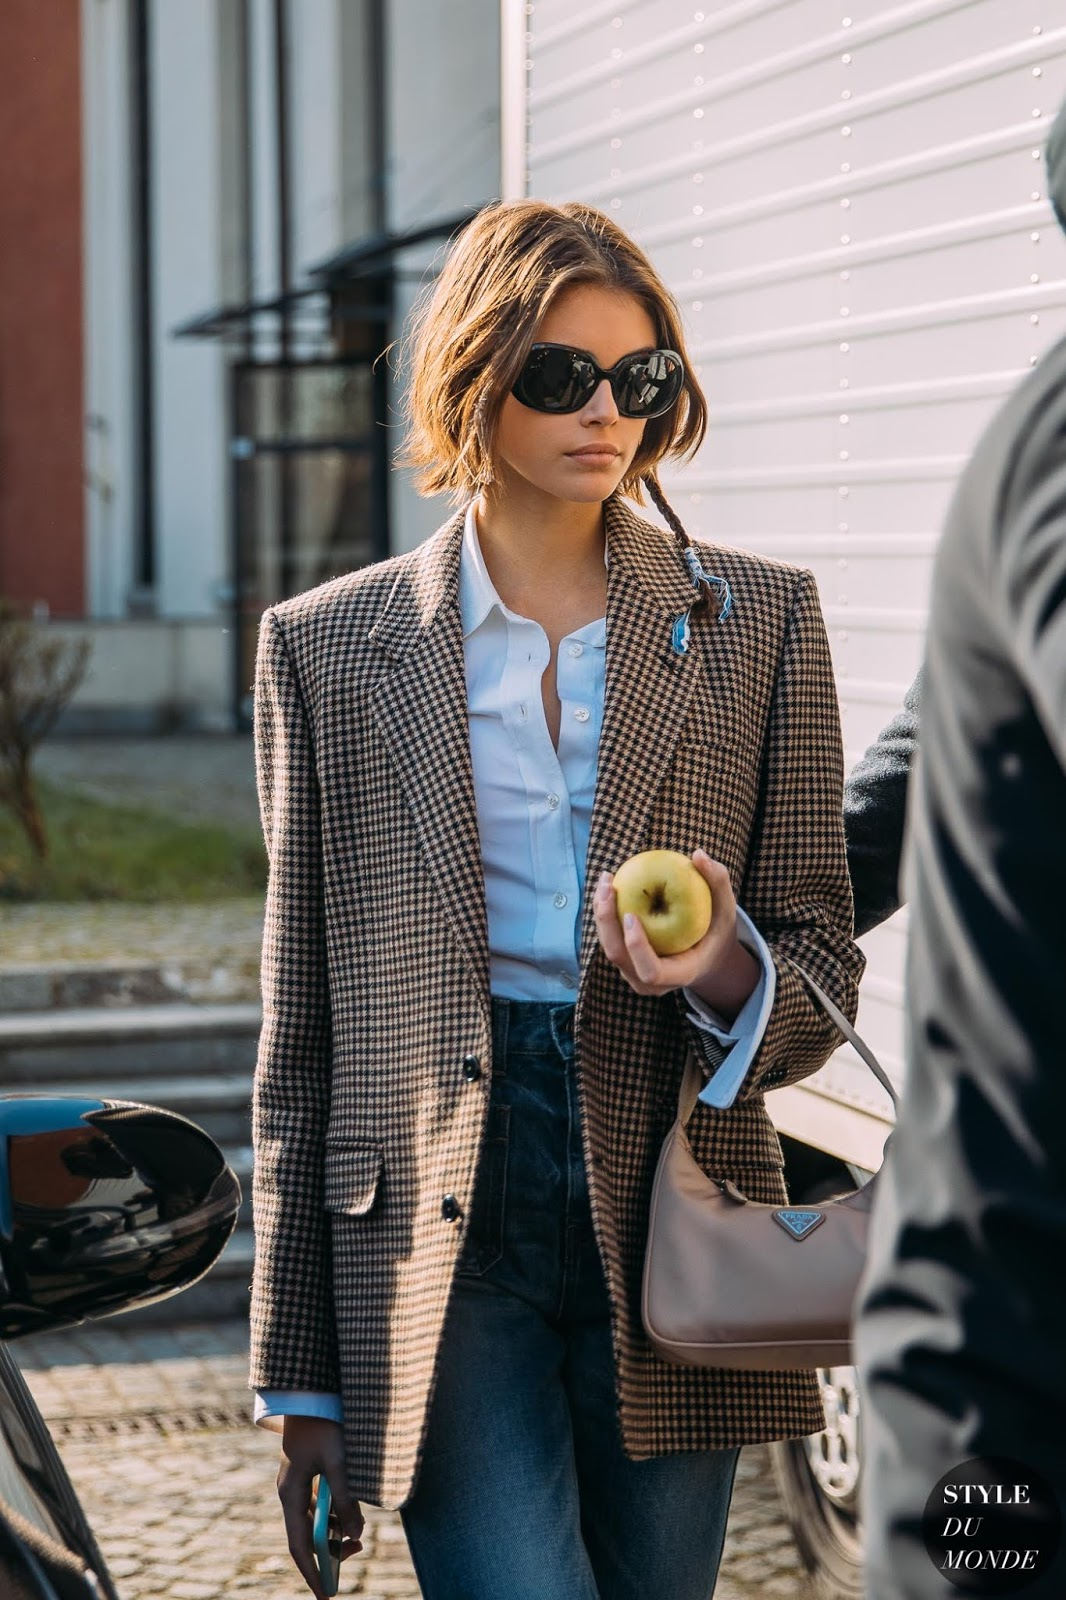 The Oversized Sunglasses We're Eyeing for Spring